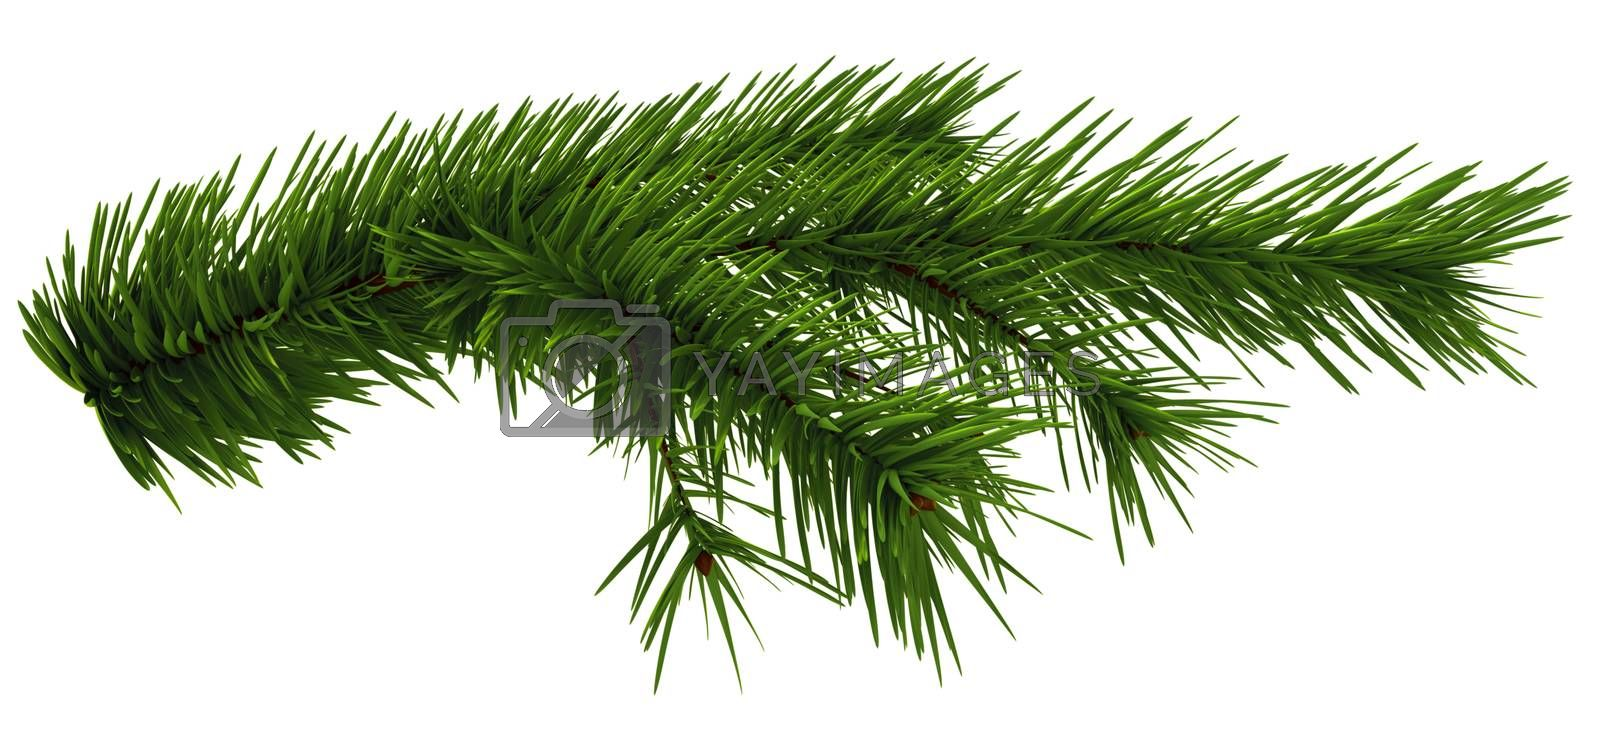 Christmas tree fir branch on white background